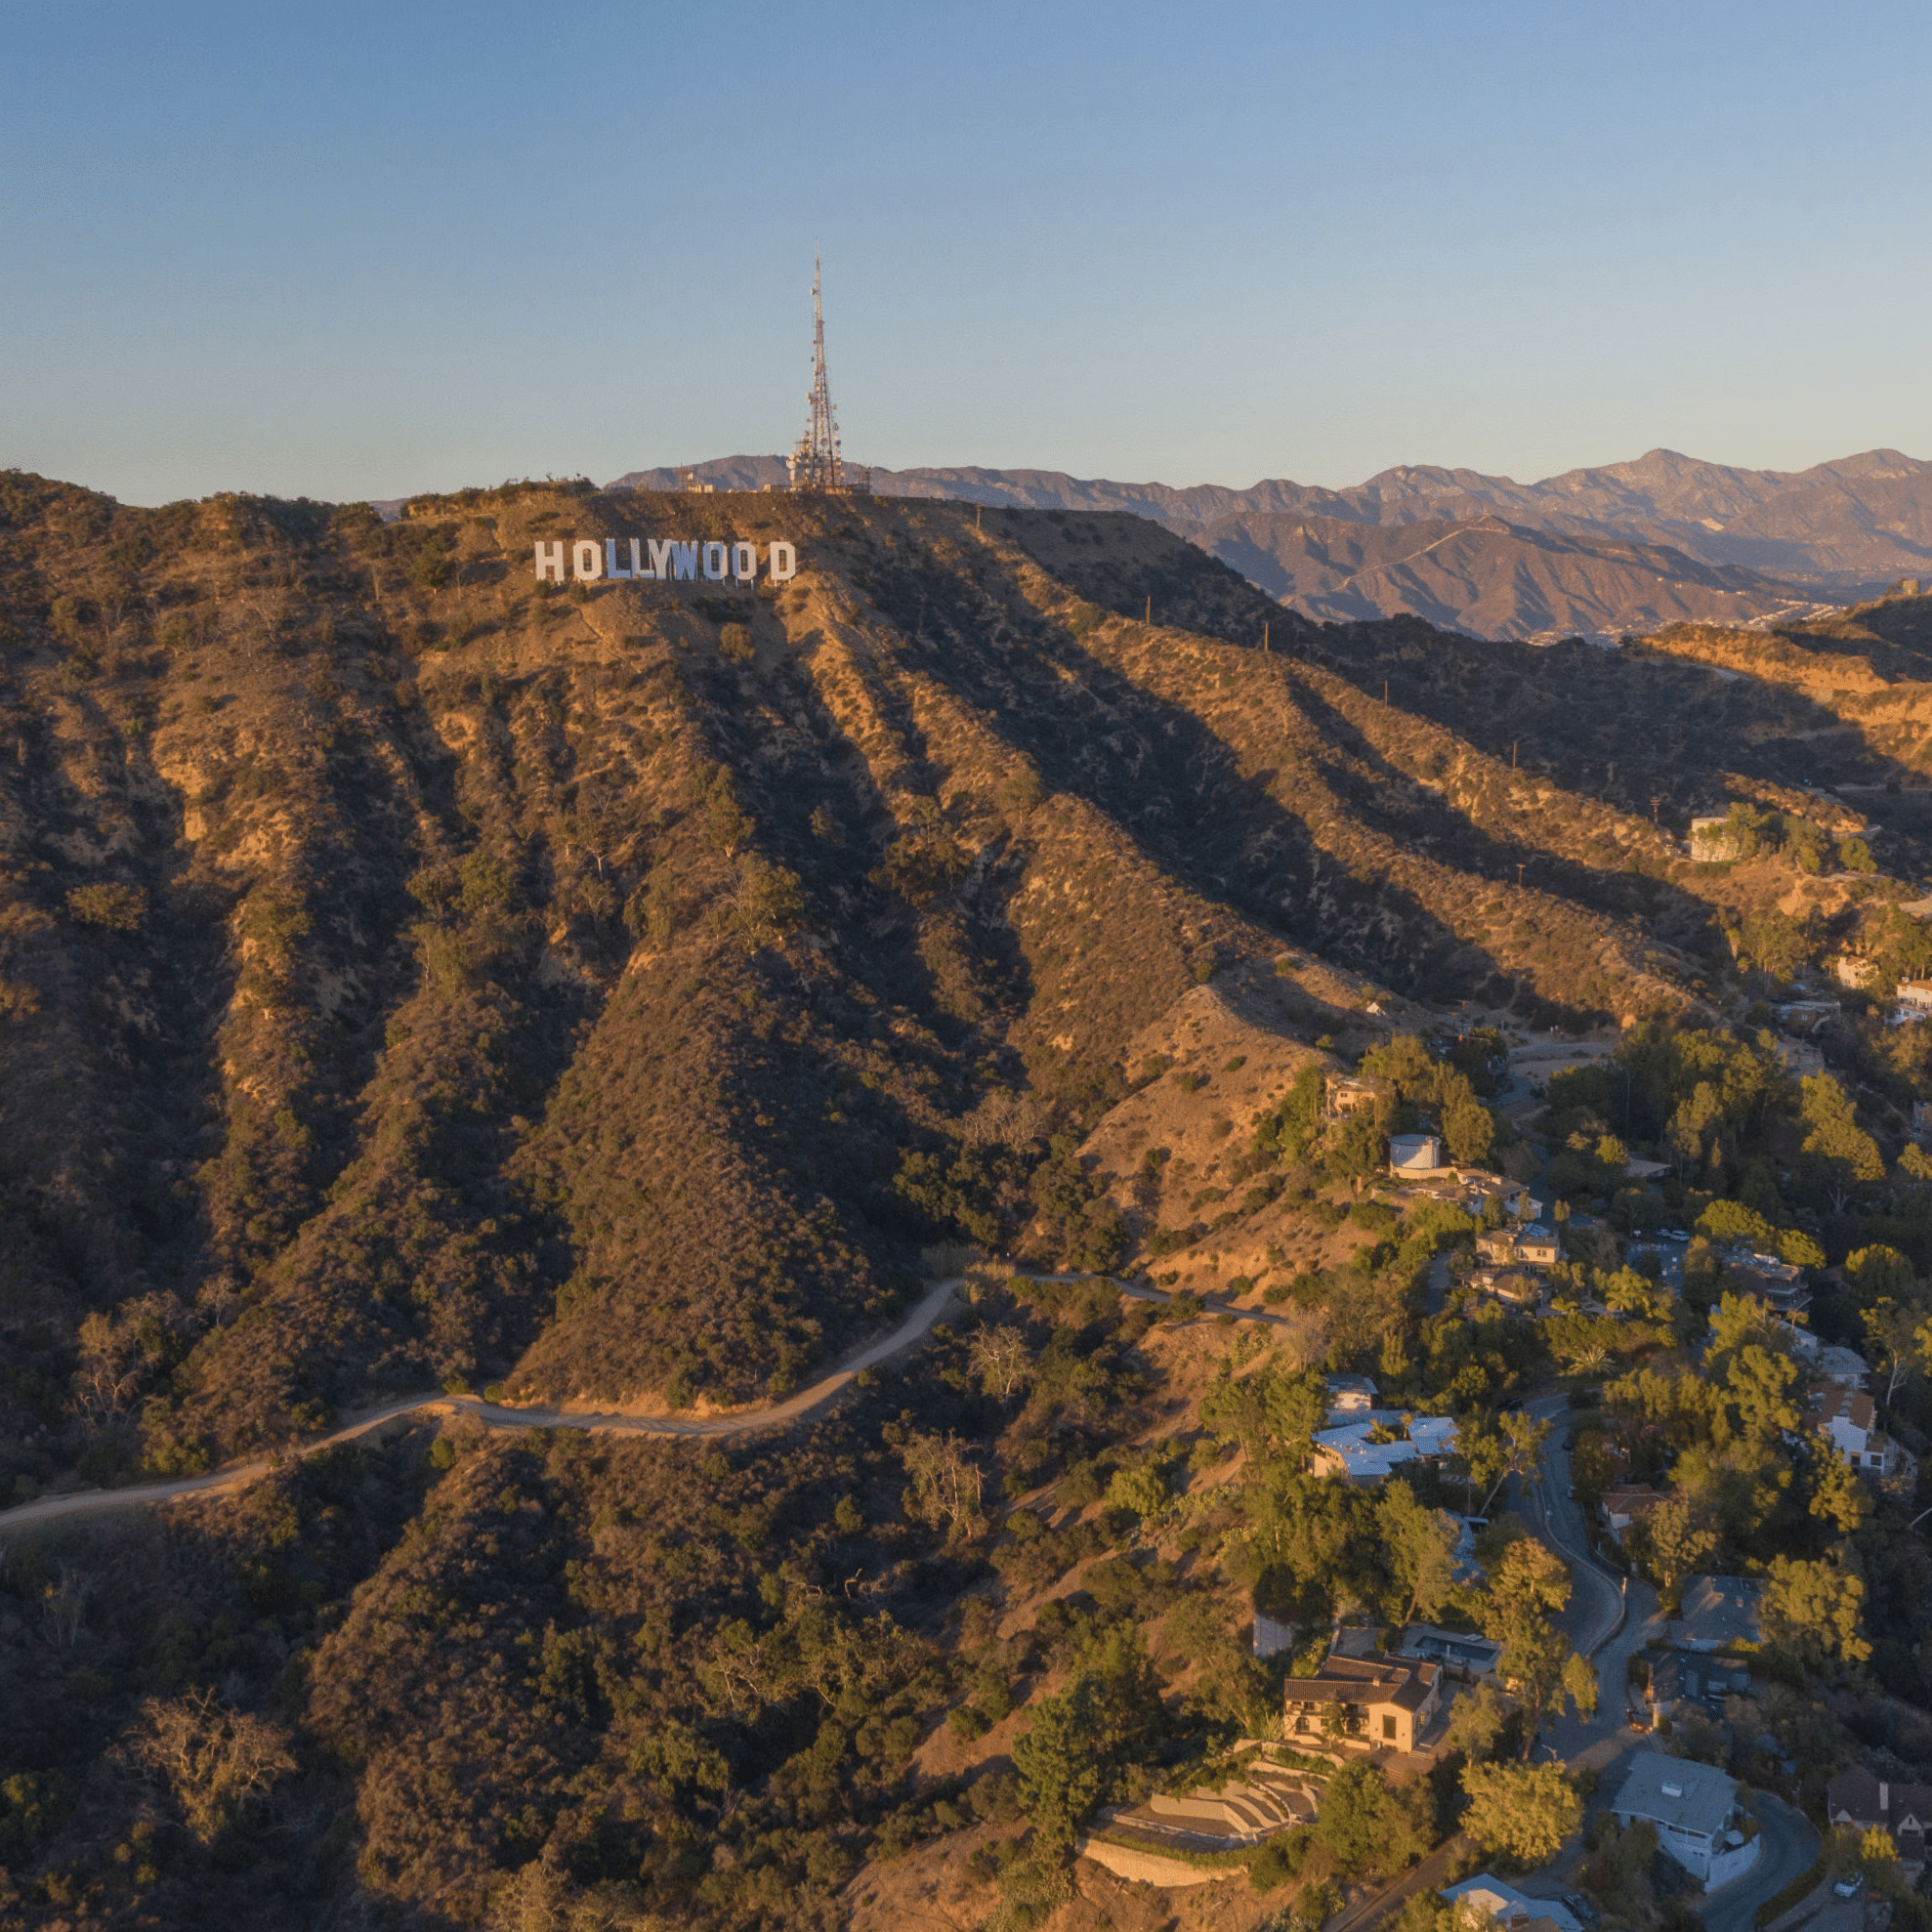 hollywood sign usa patrick roddelkopf patrick roddelkopf fotografie